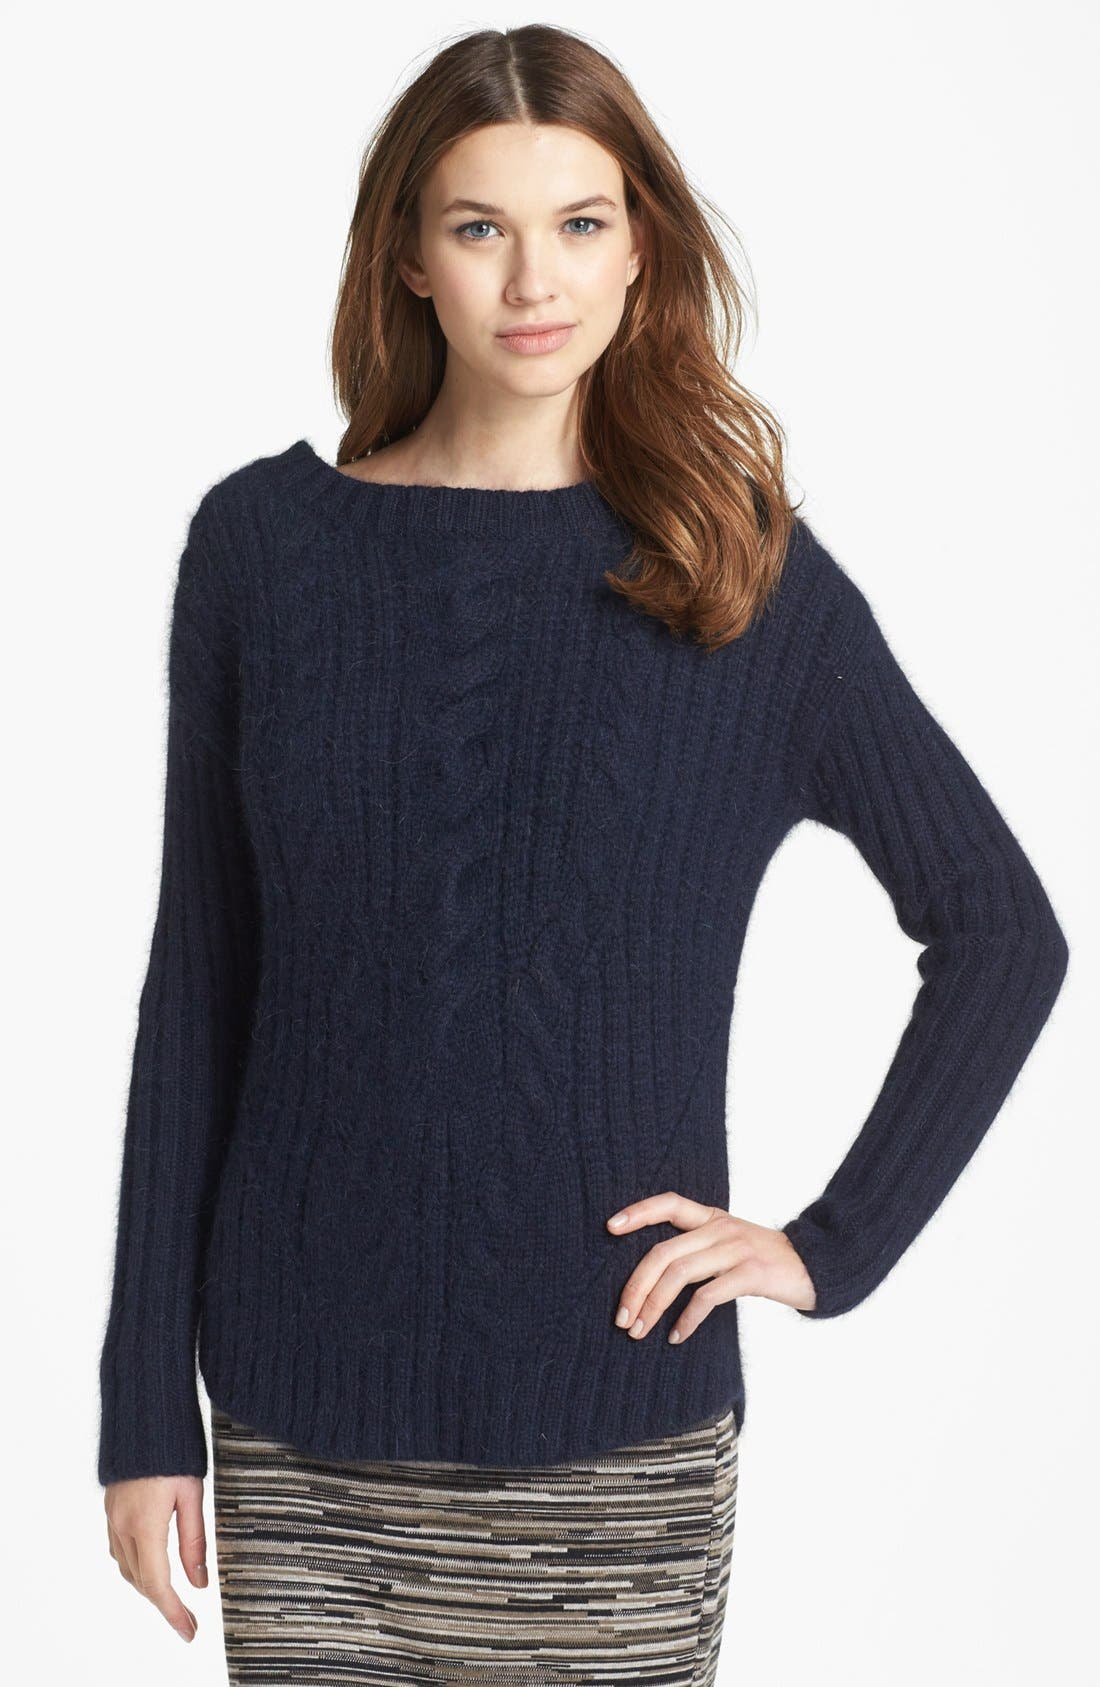 Alternate Image 1 Selected - Trina Turk 'Rowen' Sweater